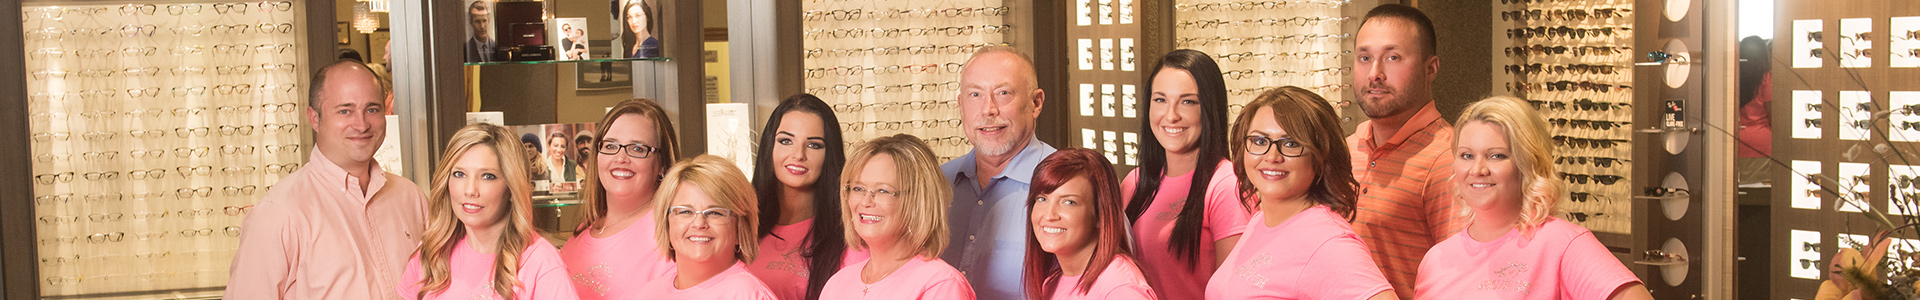 white-eye-care-logan-wv-family-eye-care-eye-exams-designer-frames-sunglasses-contacts-banner